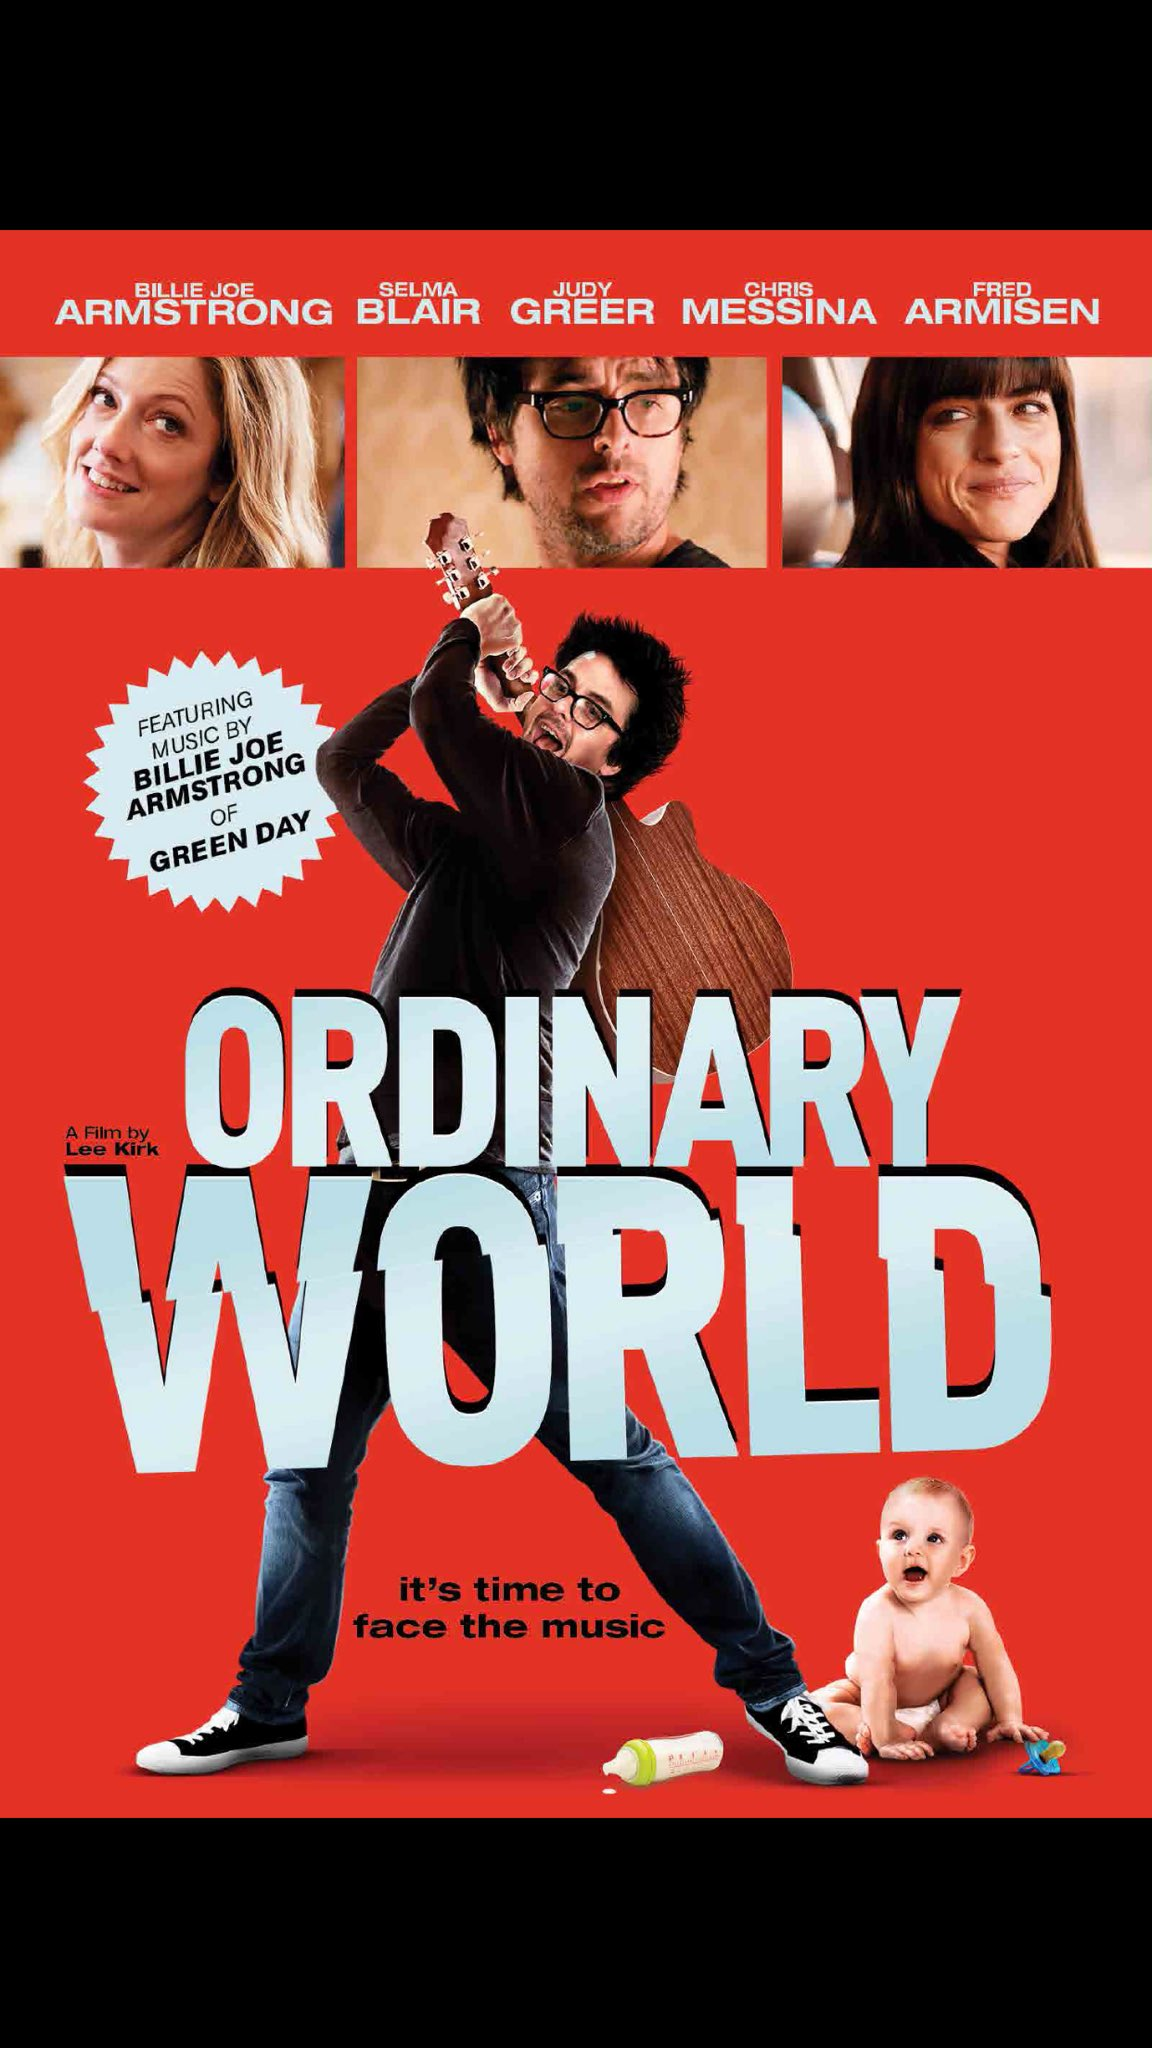 Are you punk enough? #OrdinaryWorld now available on Blu-ray and Digital HD https://t.co/6iME9fXMK0 https://t.co/xss6SaIb0N